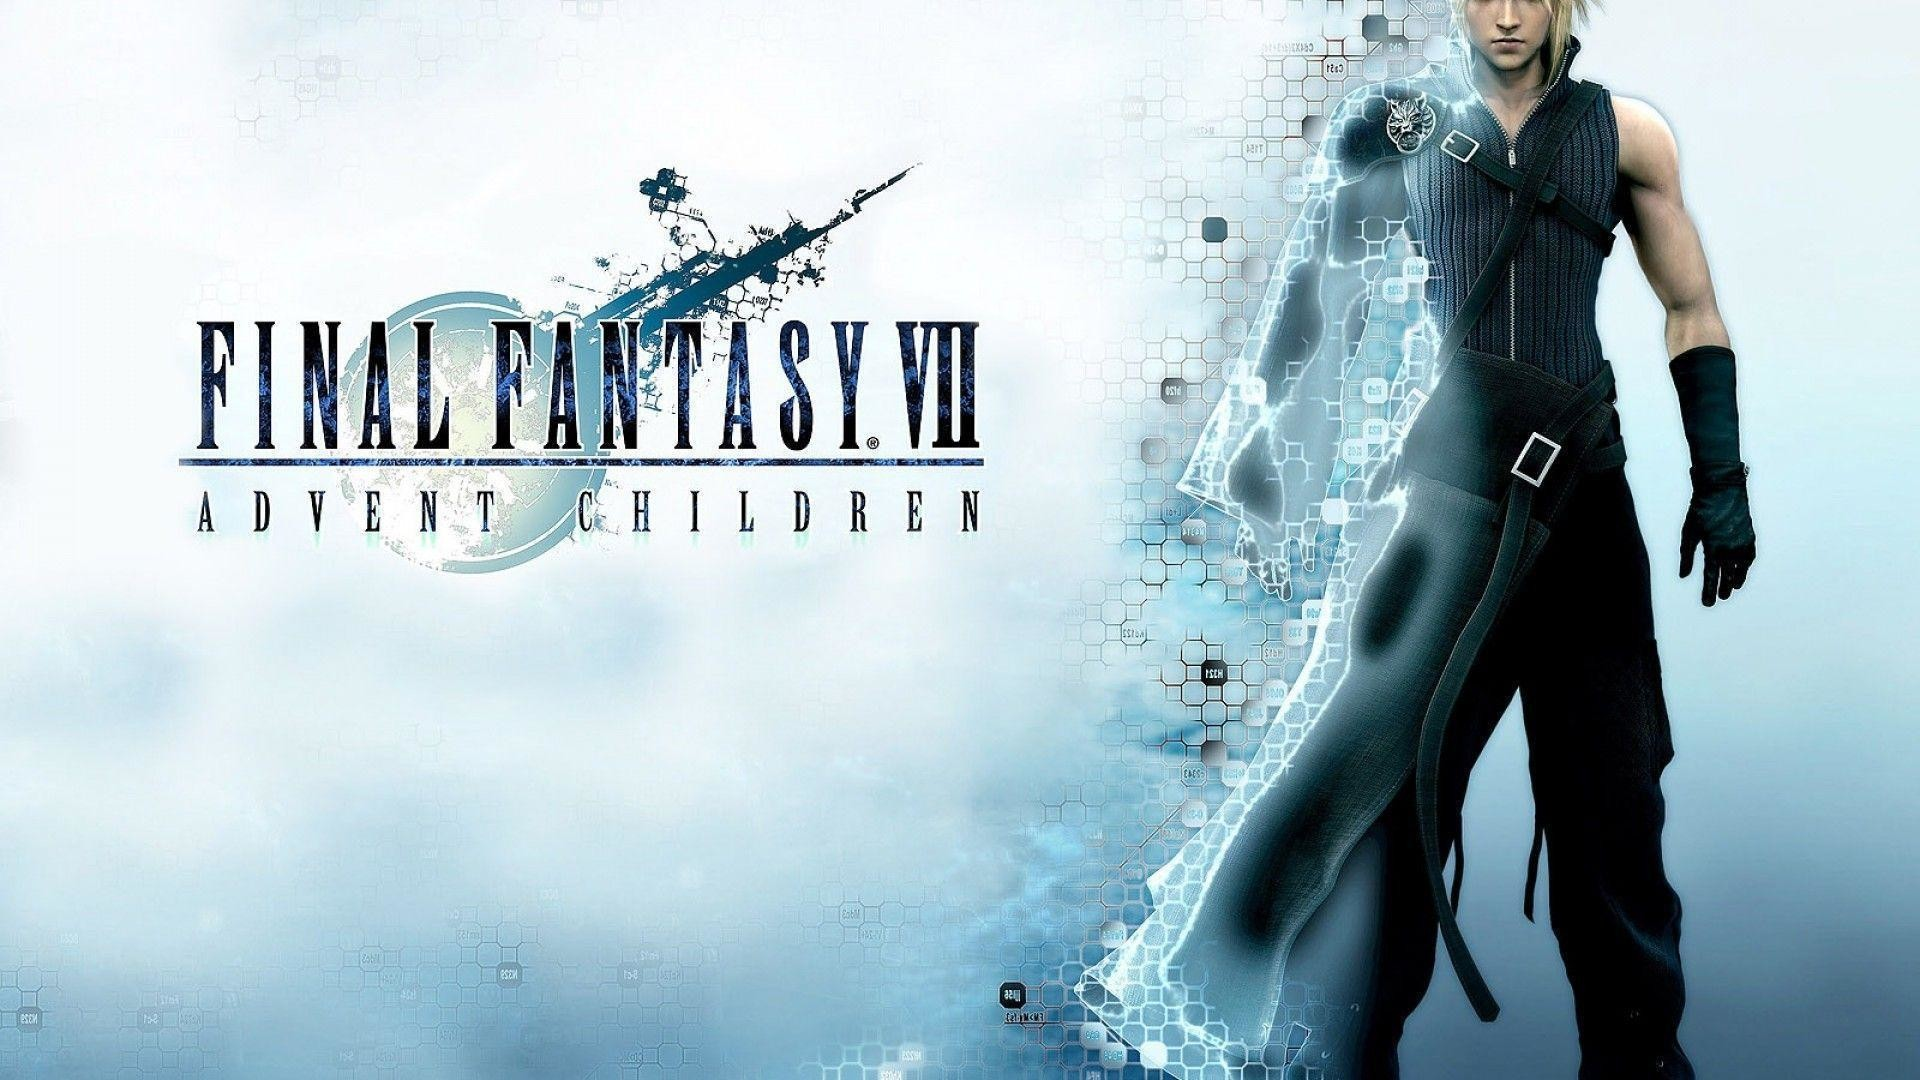 1920x1080 Wallpapers For > Final Fantasy 7 Wallpaper 1920x1080